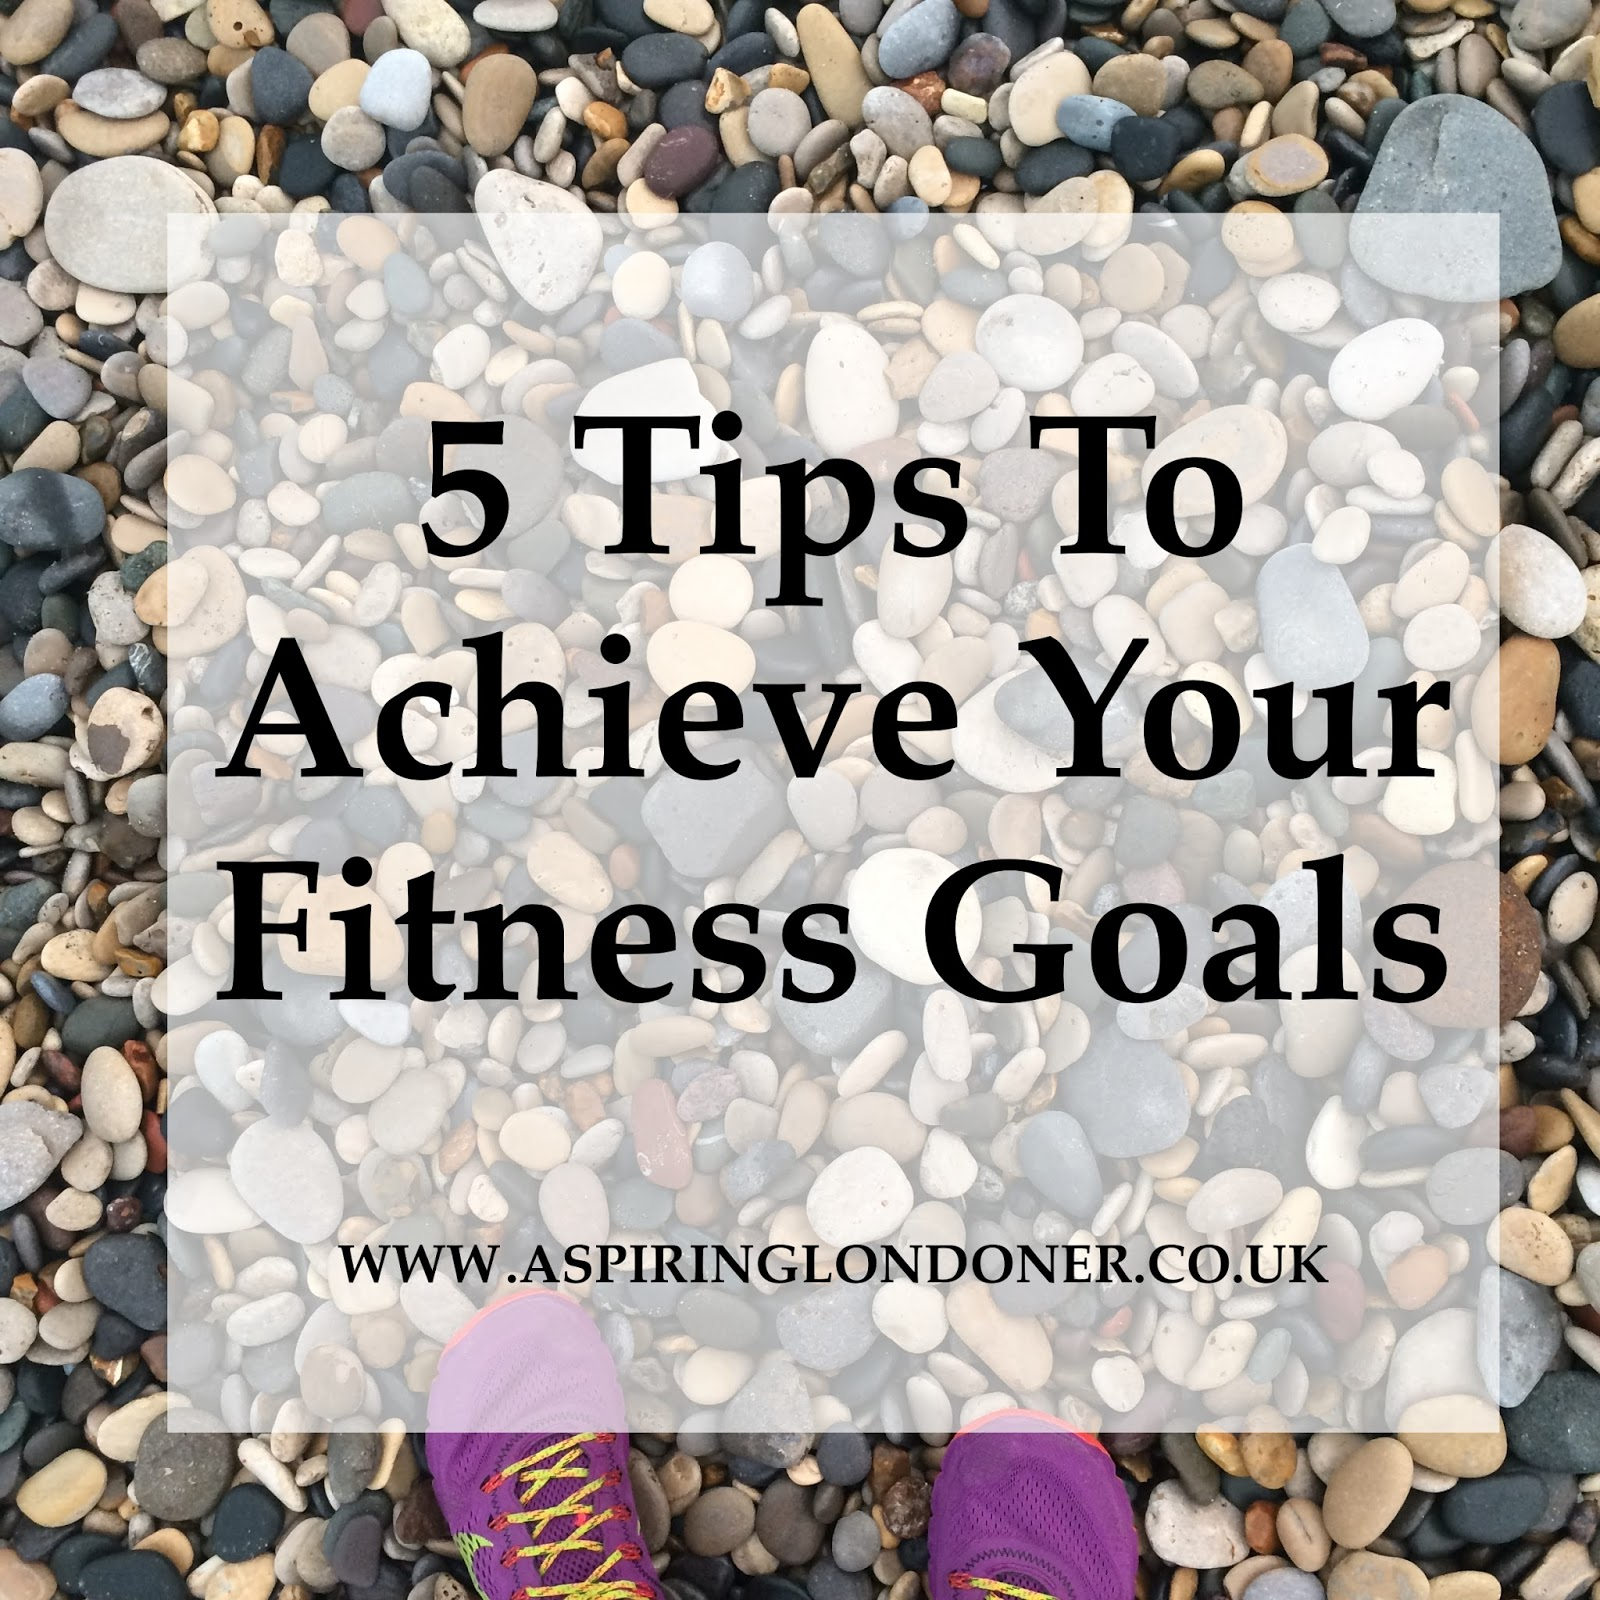 Five Simple Tips to Achieve your Fitness Goals - Aspiring Londoner